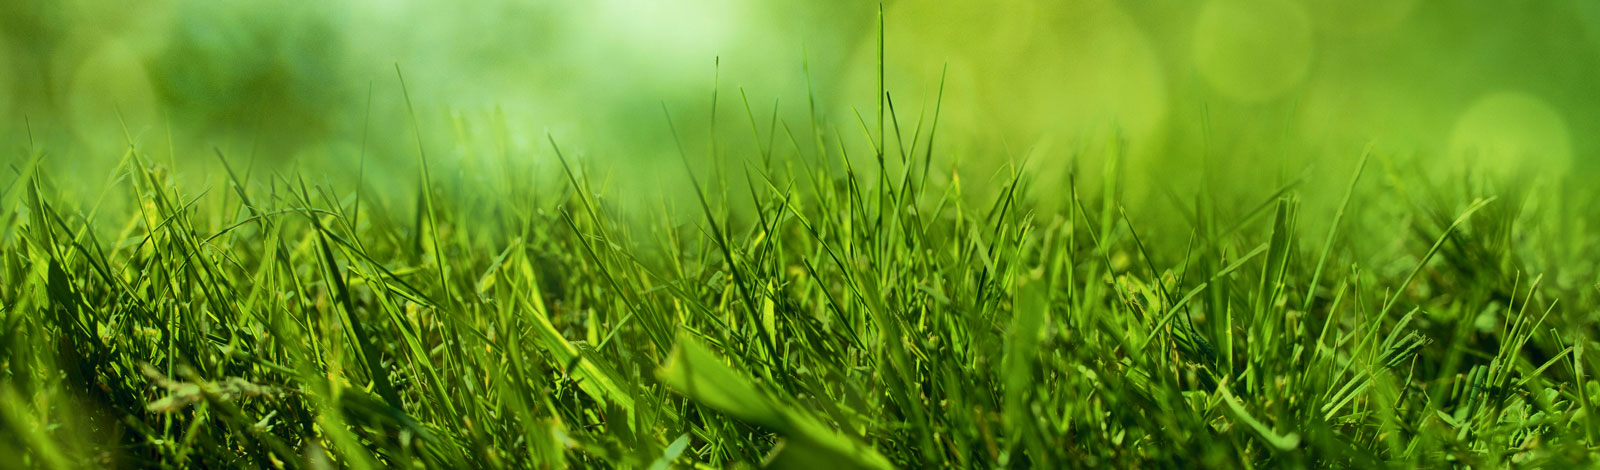 RESIDENTIAL LAWN & YARD CARE